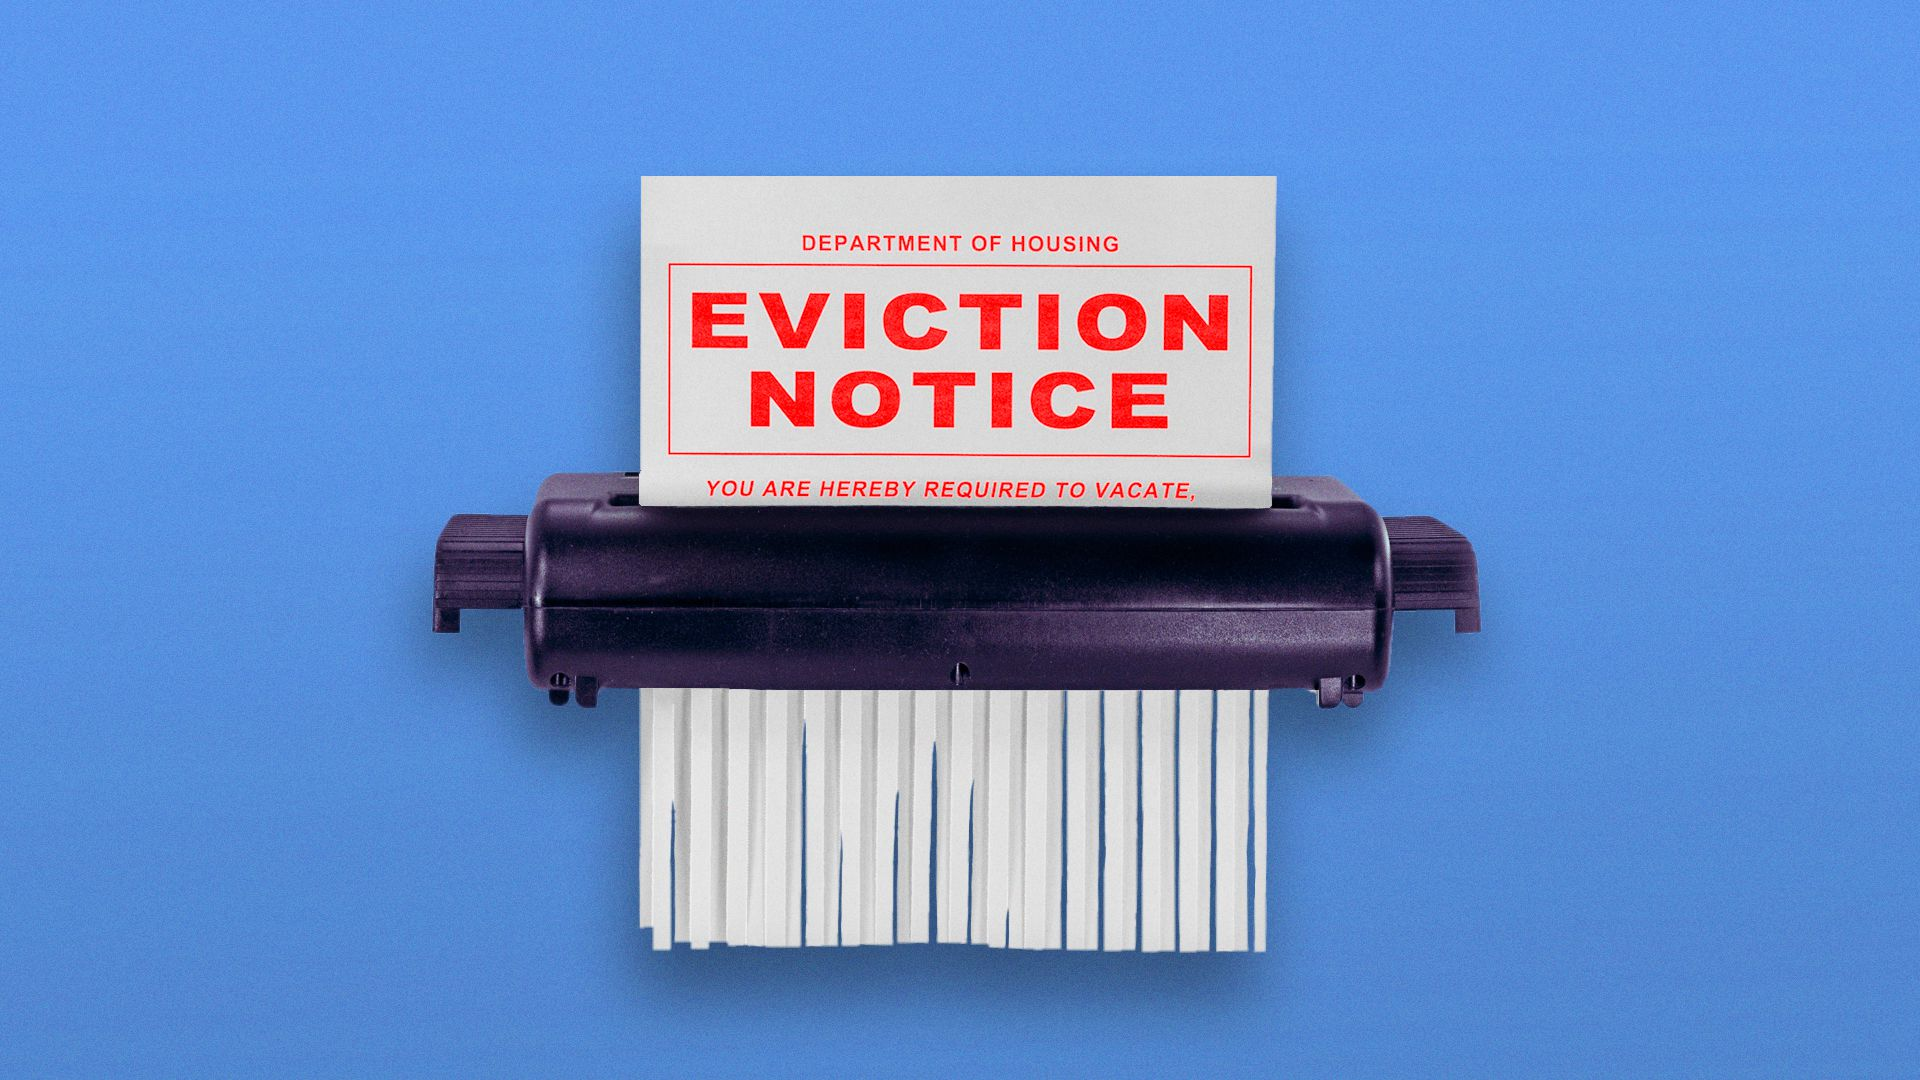 Illustration of eviction notice being shredded.